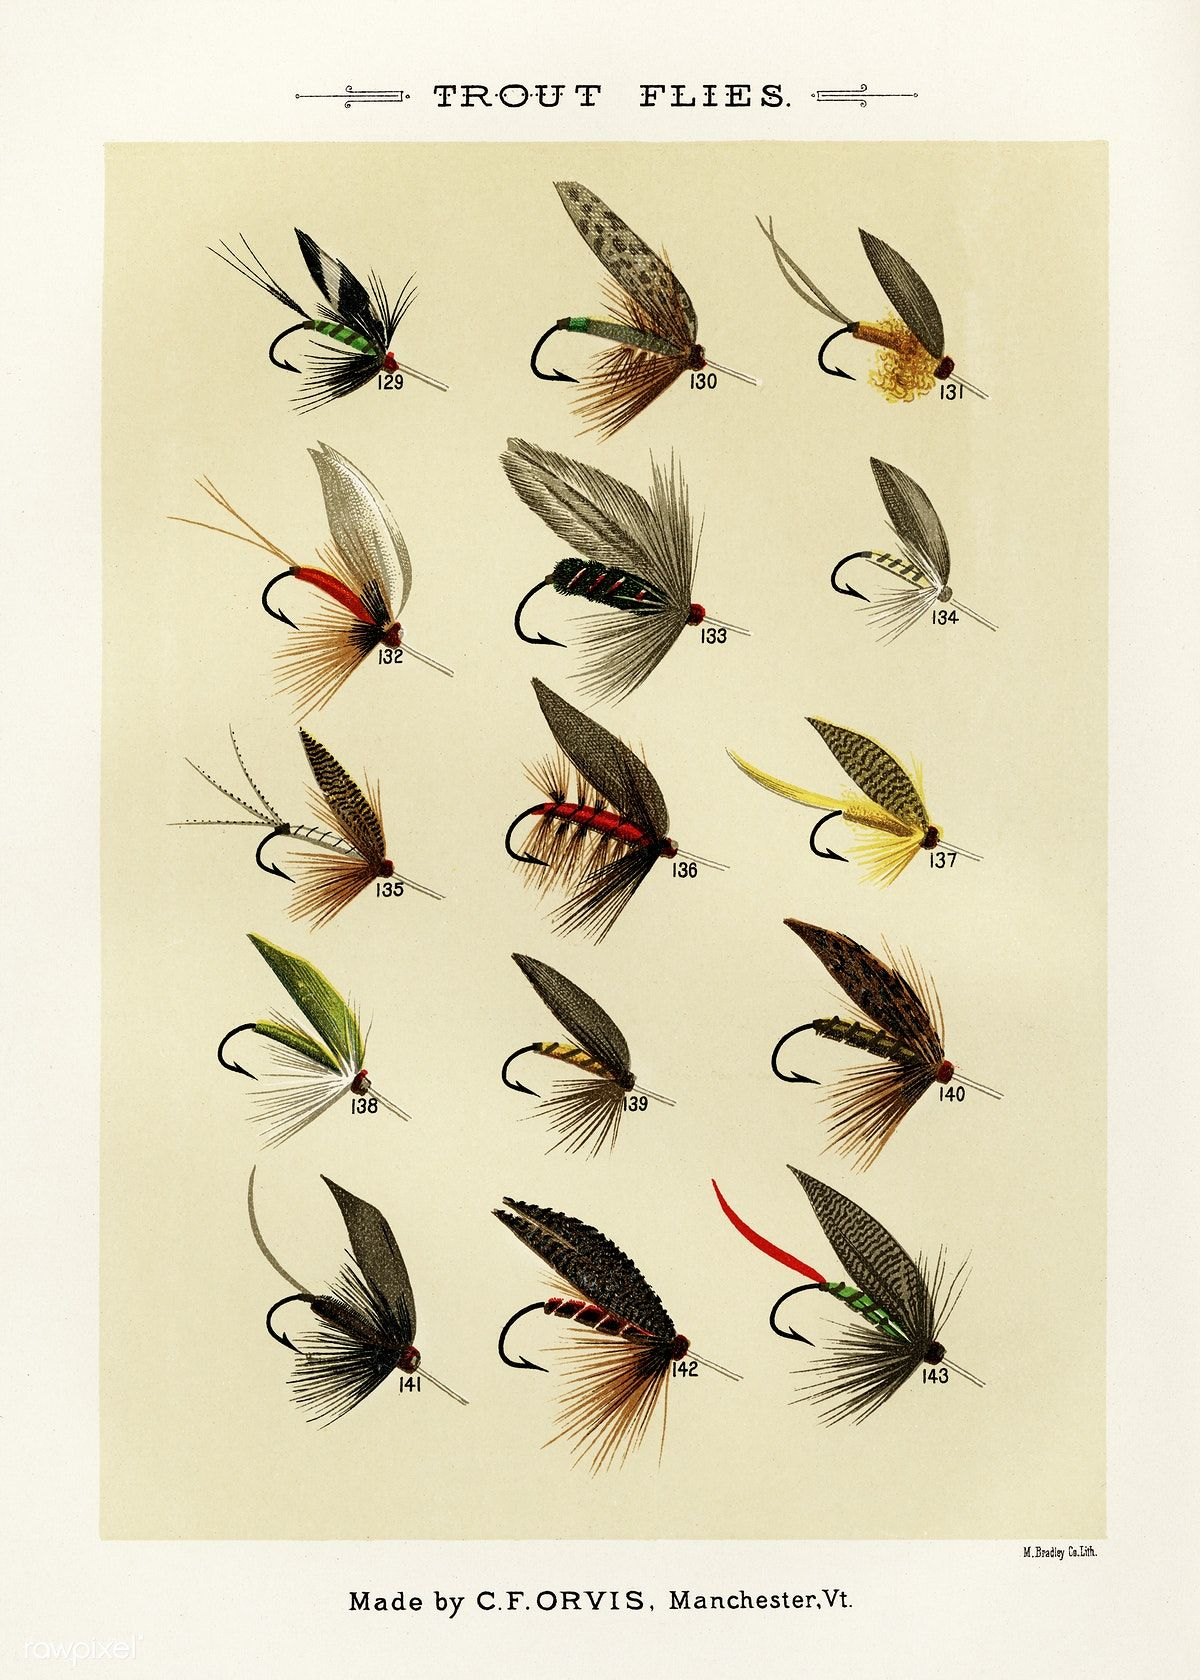 Free Public Domain Www Rawpixel Com Fishing Insects Trout Flies From Favorite Flies And Their His Fly Fishing Flies Trout Fly Fishing Lures Fly Fishing